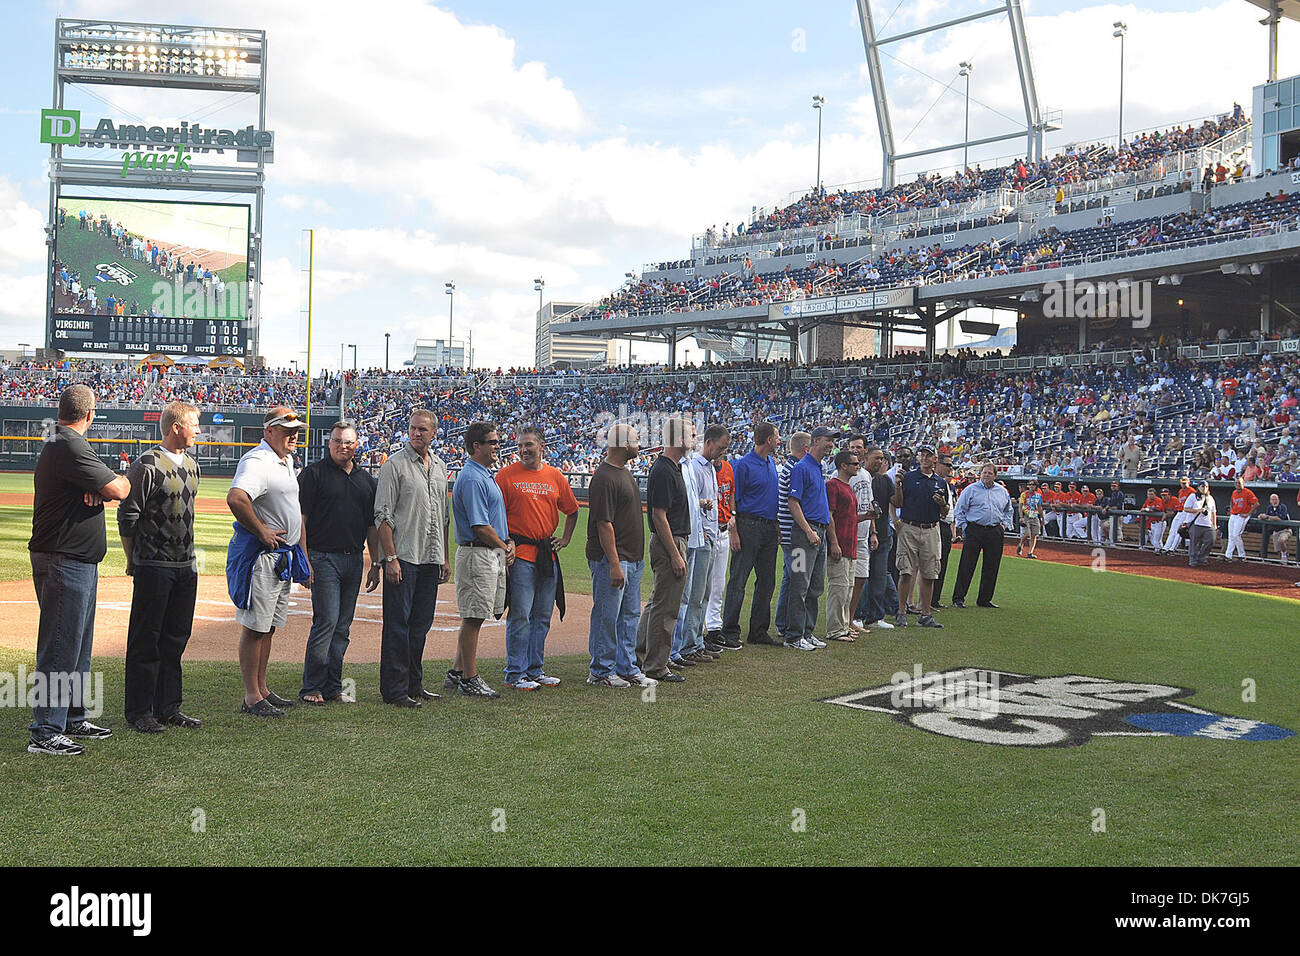 June 23, 2011 - Omaha, Nebraska, U.S - The 1991 Creighton baseball team was honored before the game on the 20 year anniversary of the school's only appearance in the College World Series. Virginia defeated California 8-1 at the College World Series at TD Ameritrade Park in Omaha, Nebraska.  California is eliminated from the tournament and Virginia plays South Carolina Friday night. - Stock Image